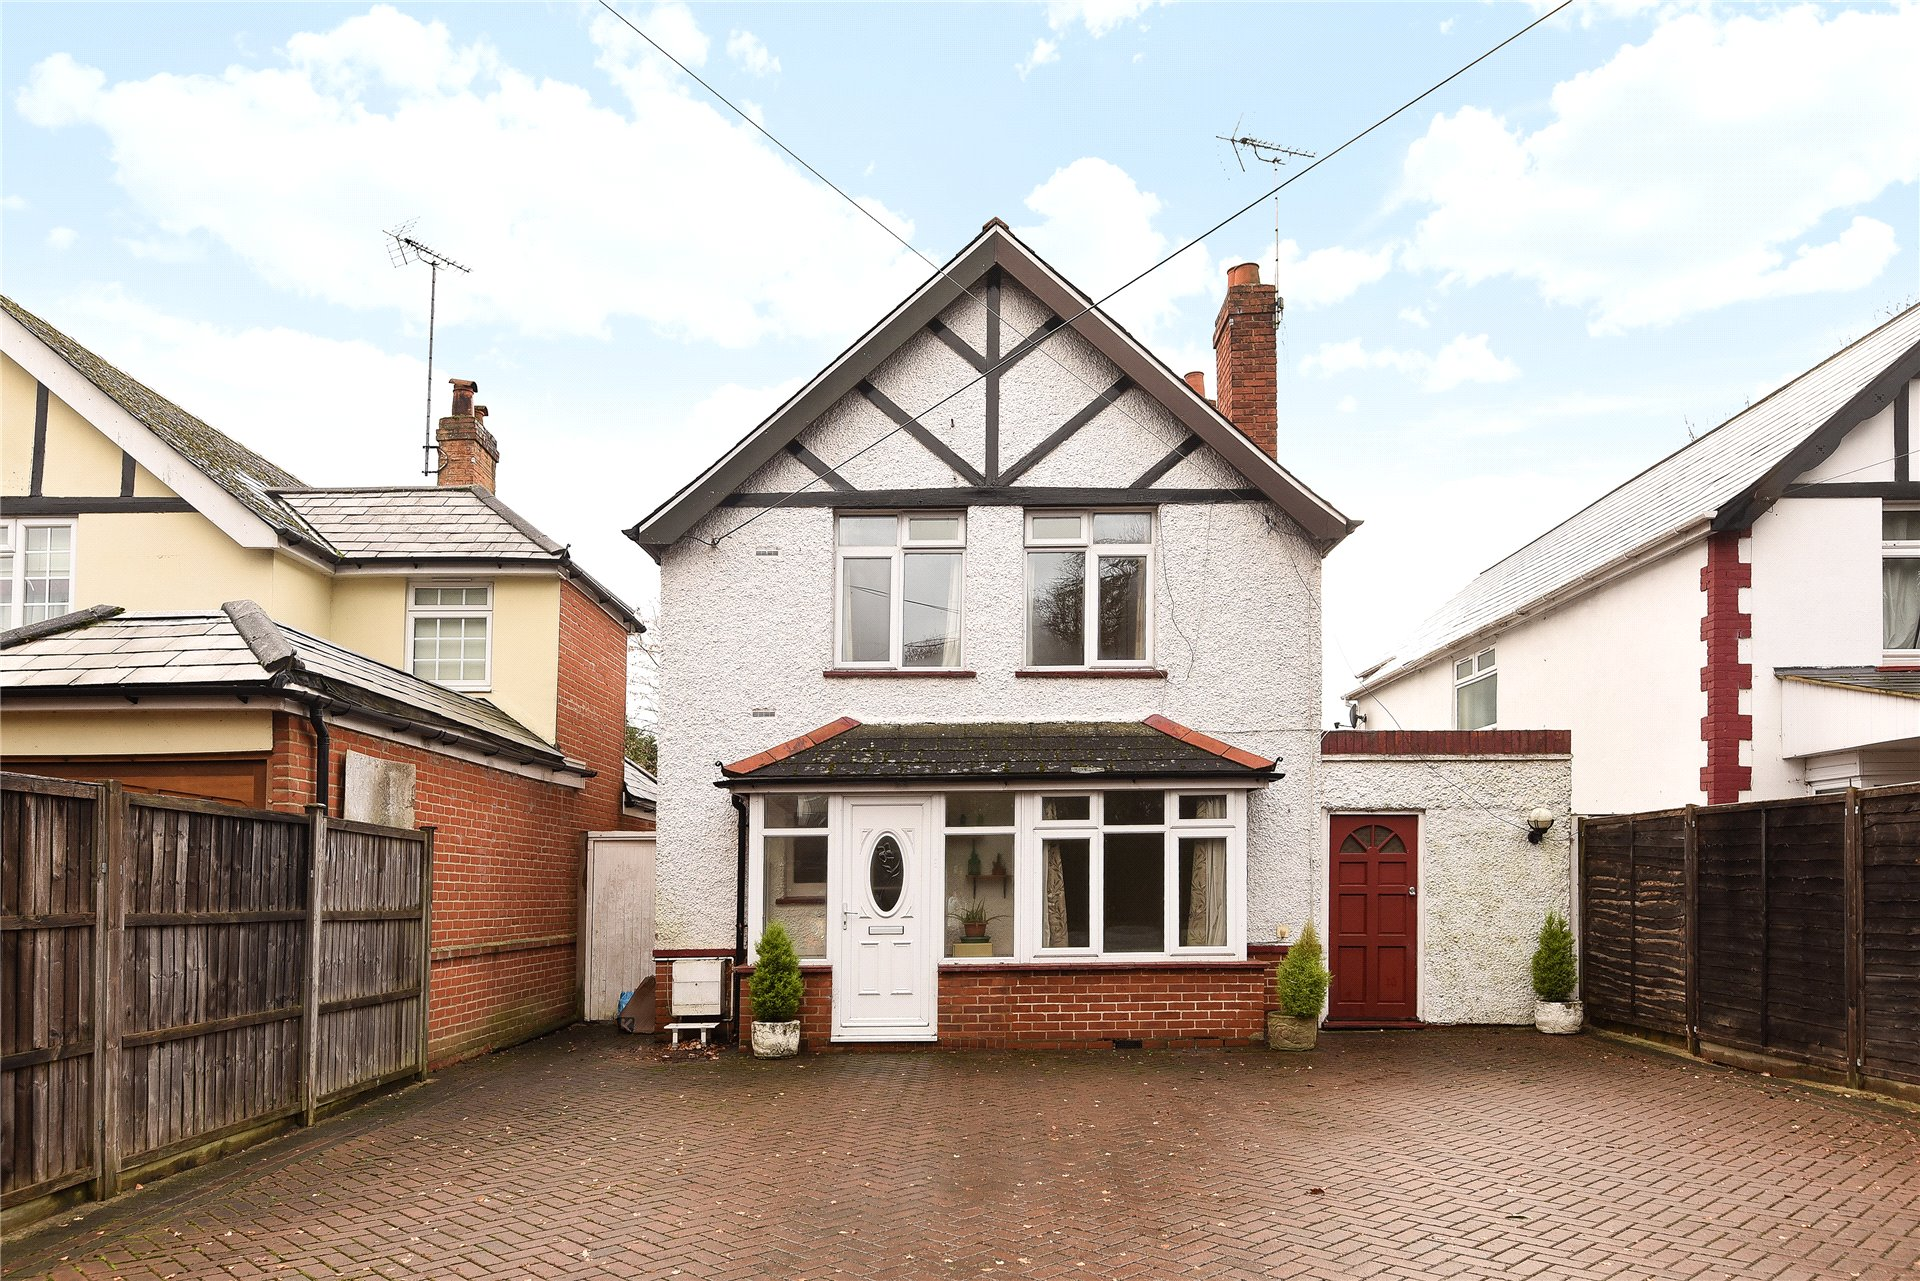 5 Bedrooms Detached House for sale in Reading Road, Winnersh, Berkshire, RG41